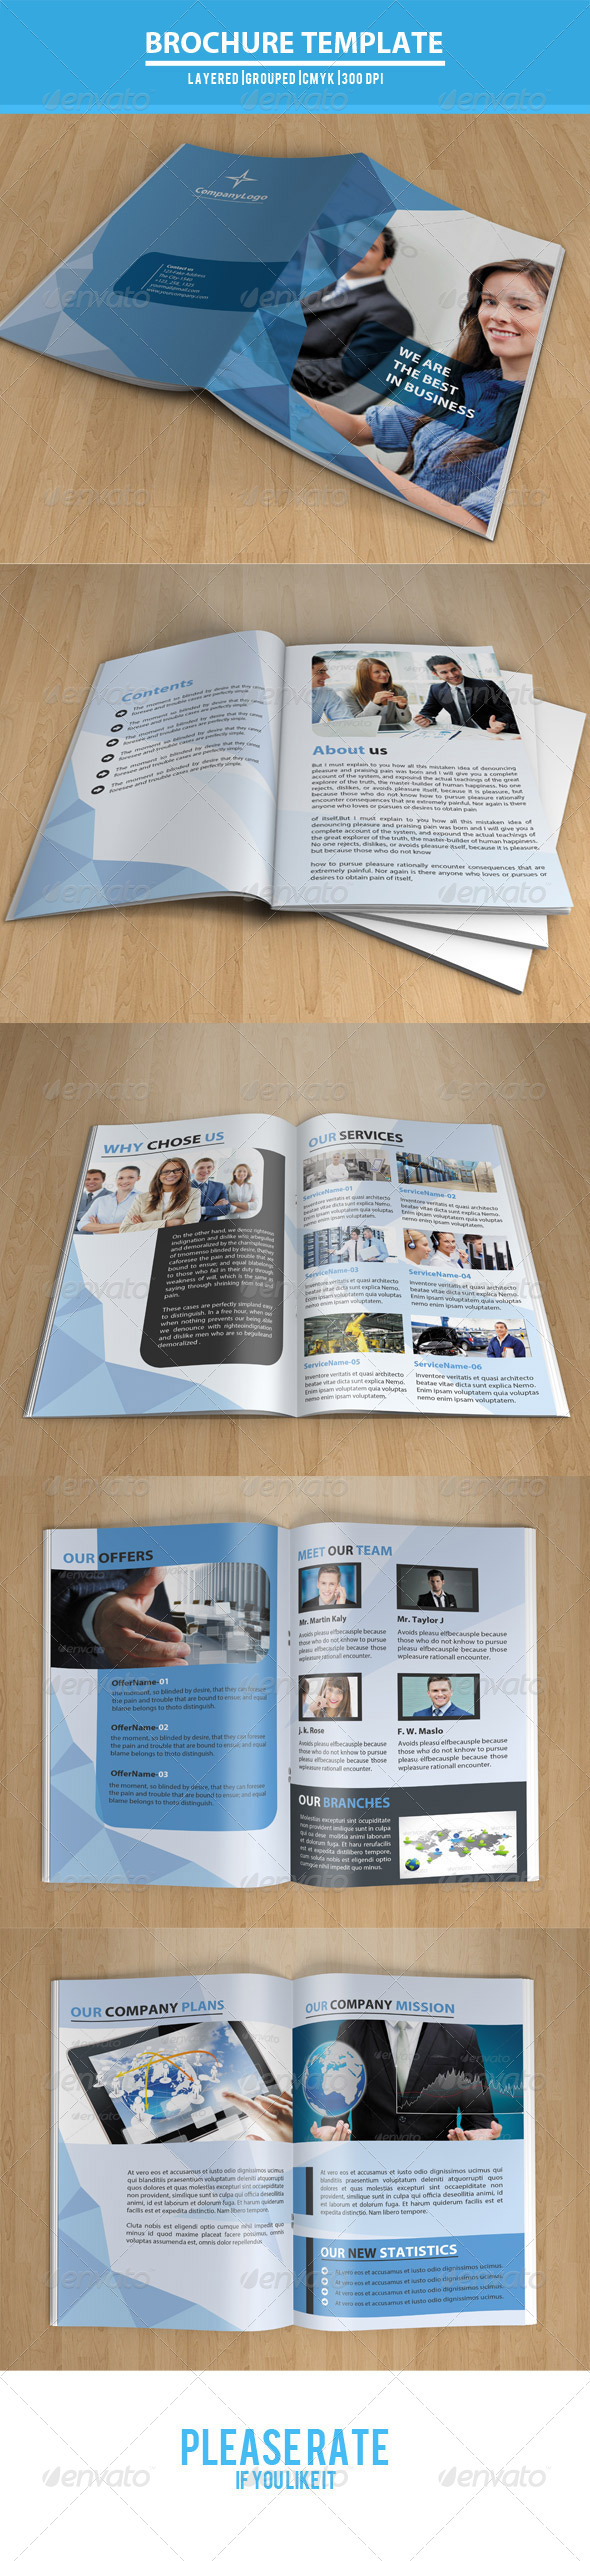 GraphicRiver Bifold Business Brochure-V30 7892141